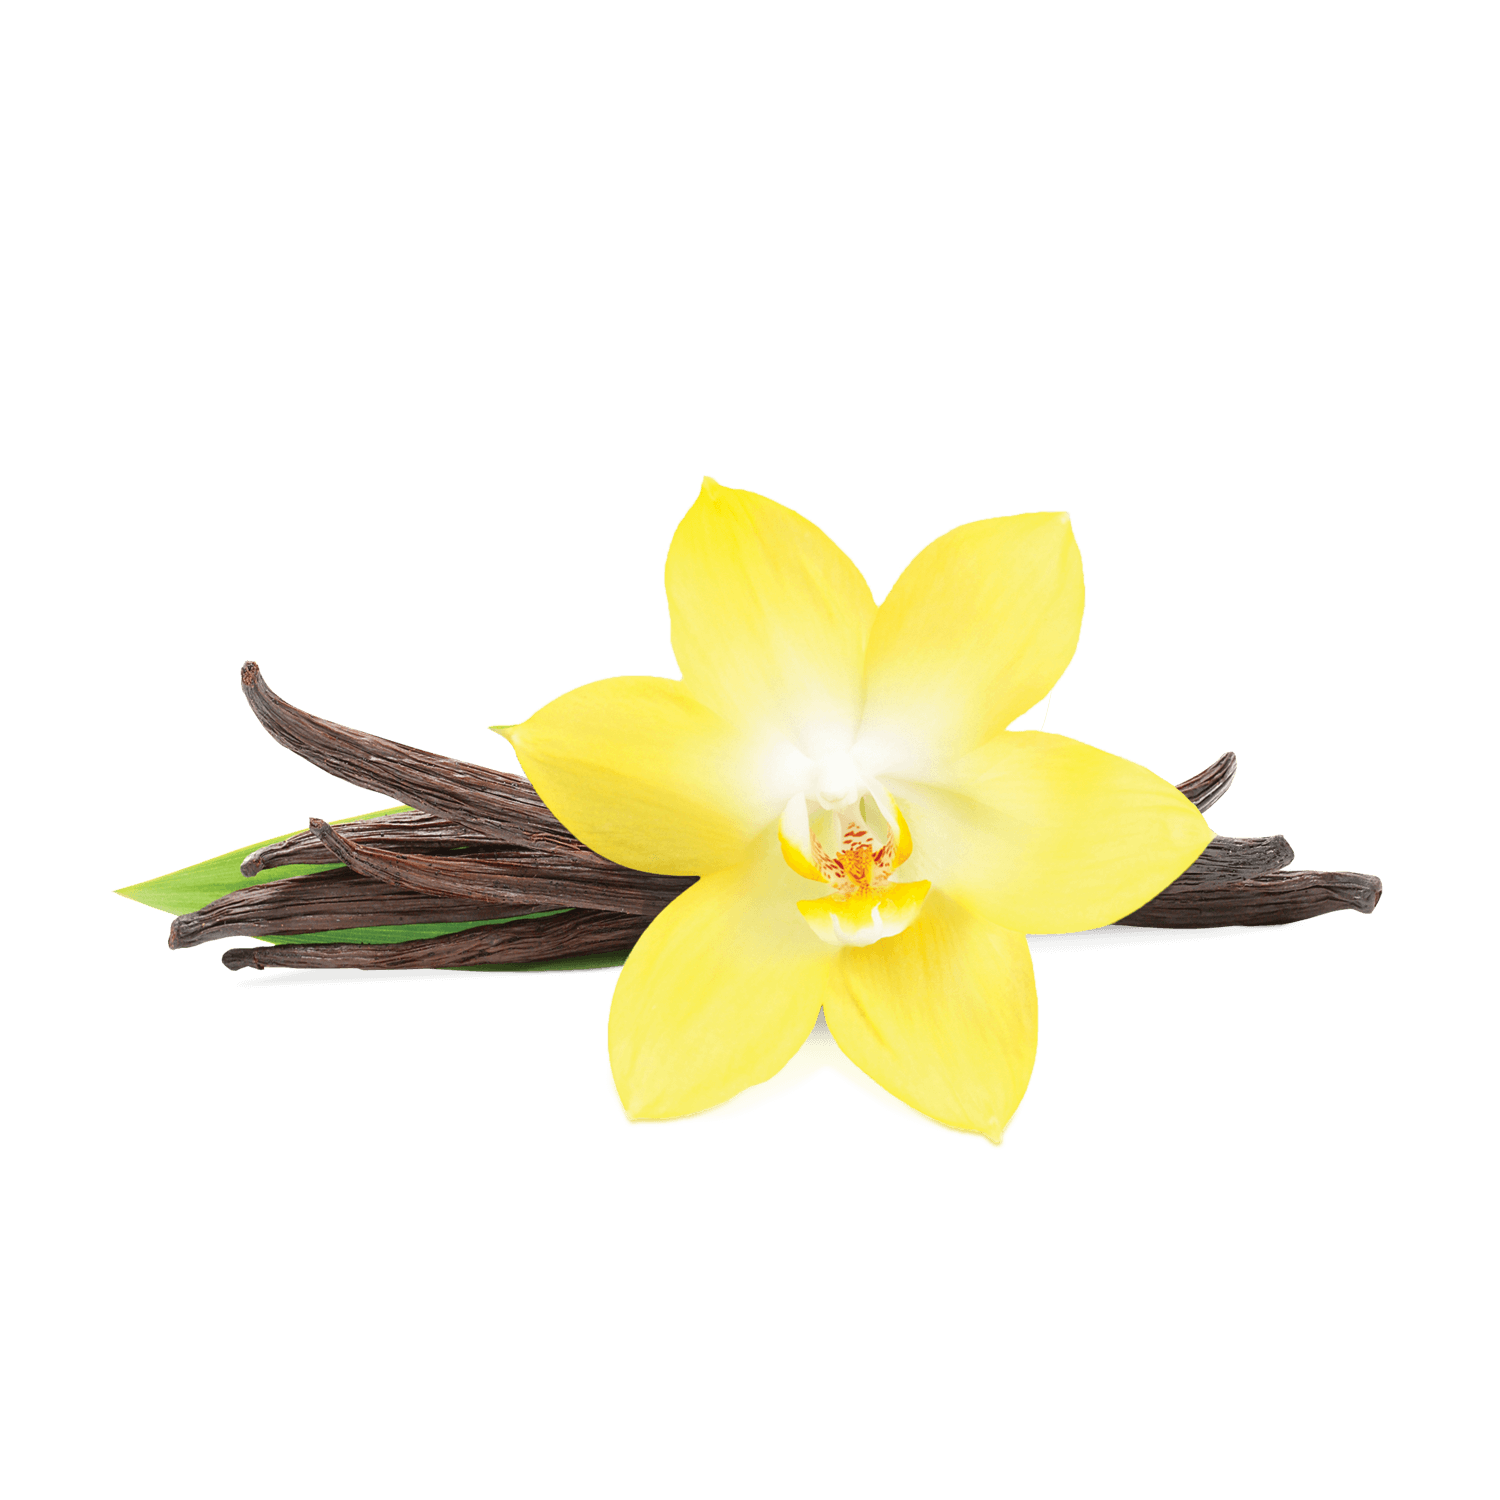 Vanilla flower clipart freeuse Vanilla PNG Transparent Vanilla.PNG Images. | PlusPNG freeuse